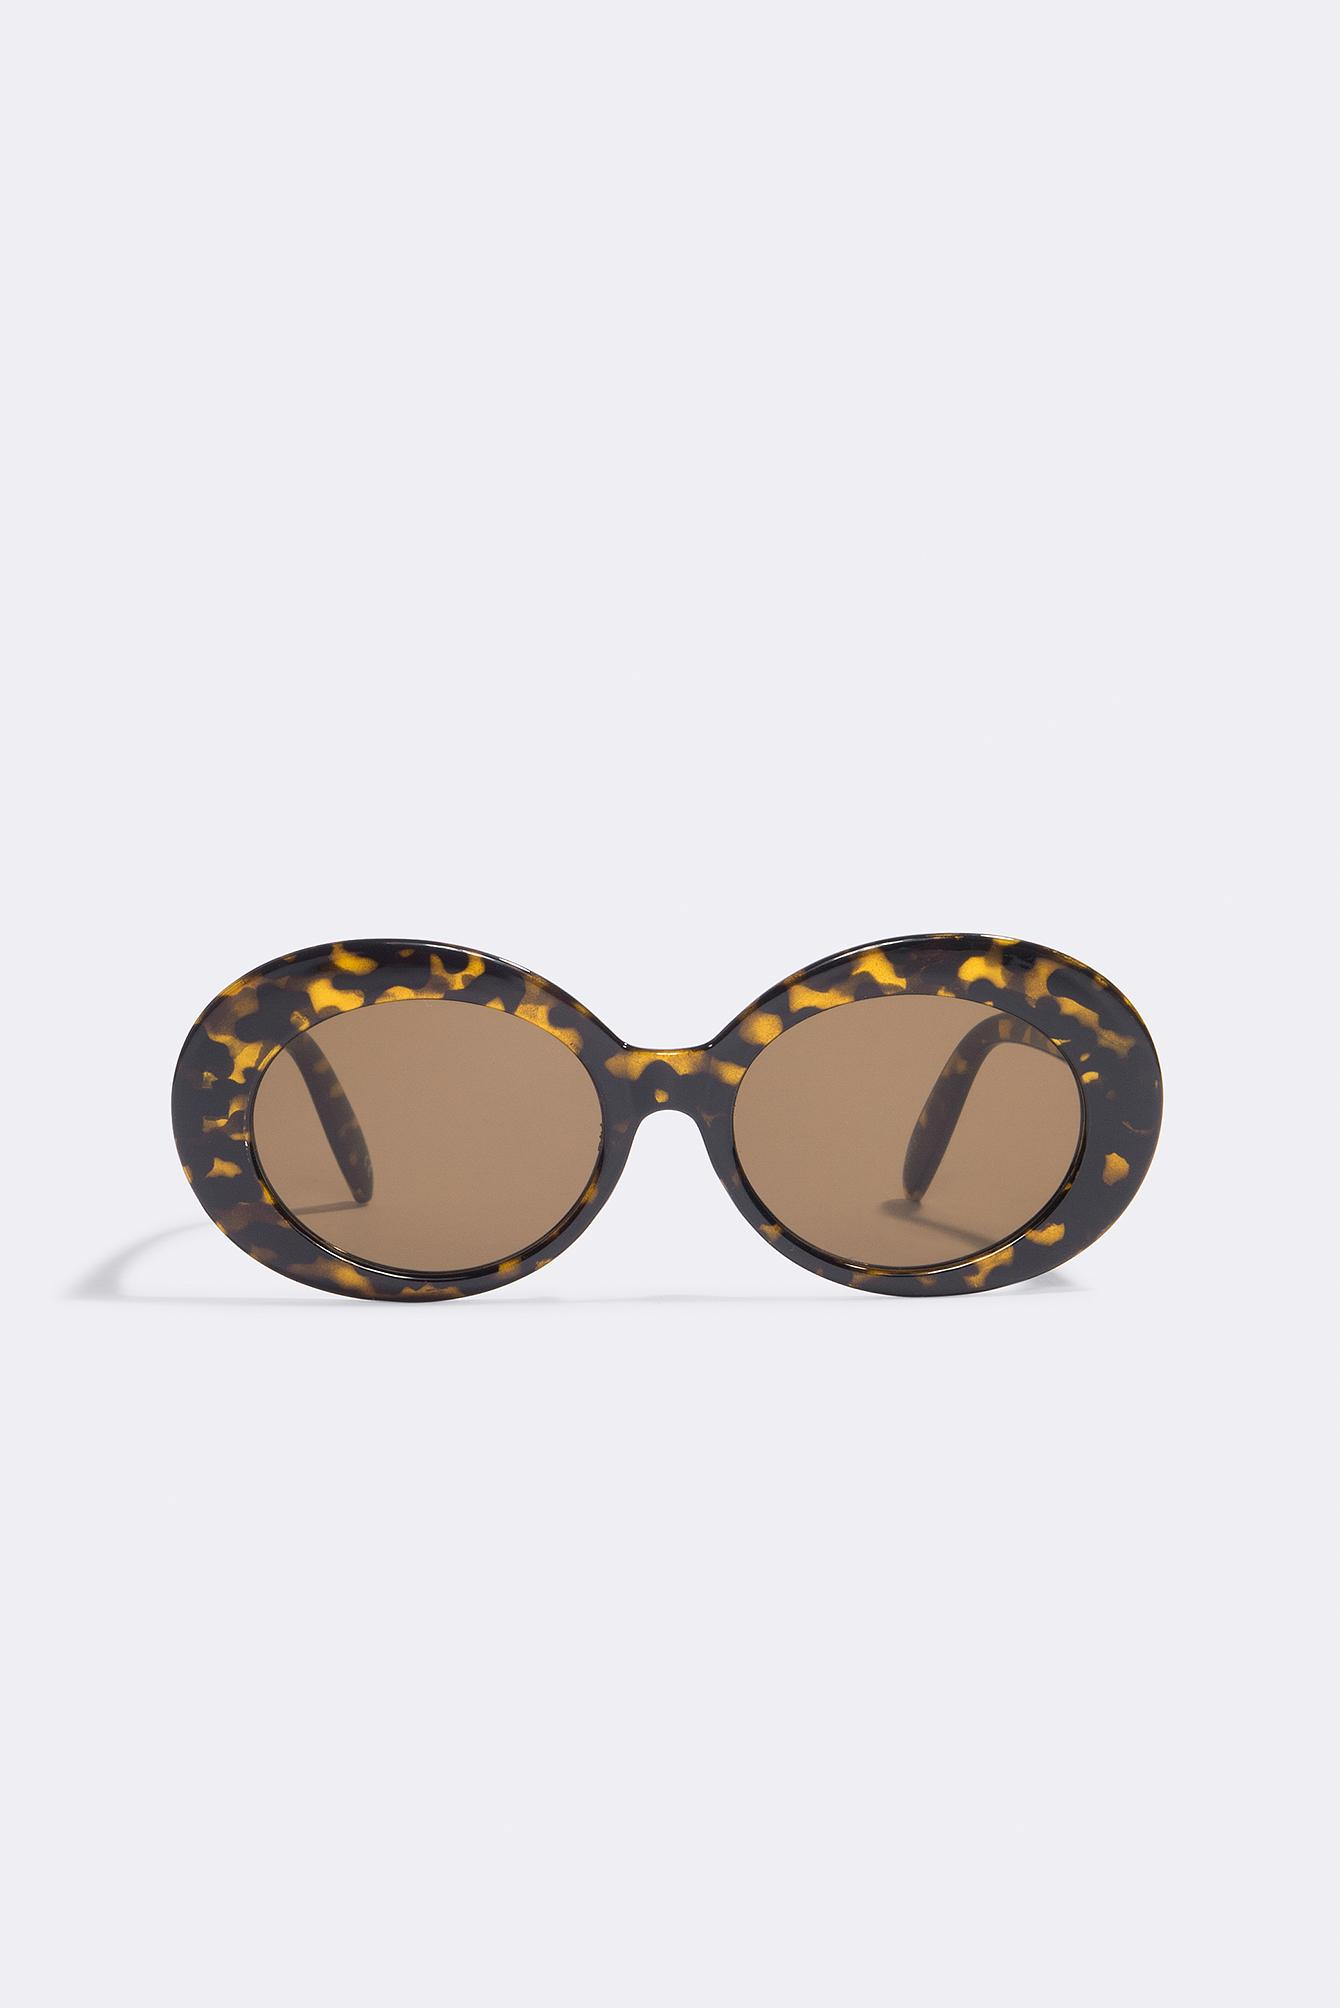 NA-KD Accessories Oval Sunglasses - Black,Yellow